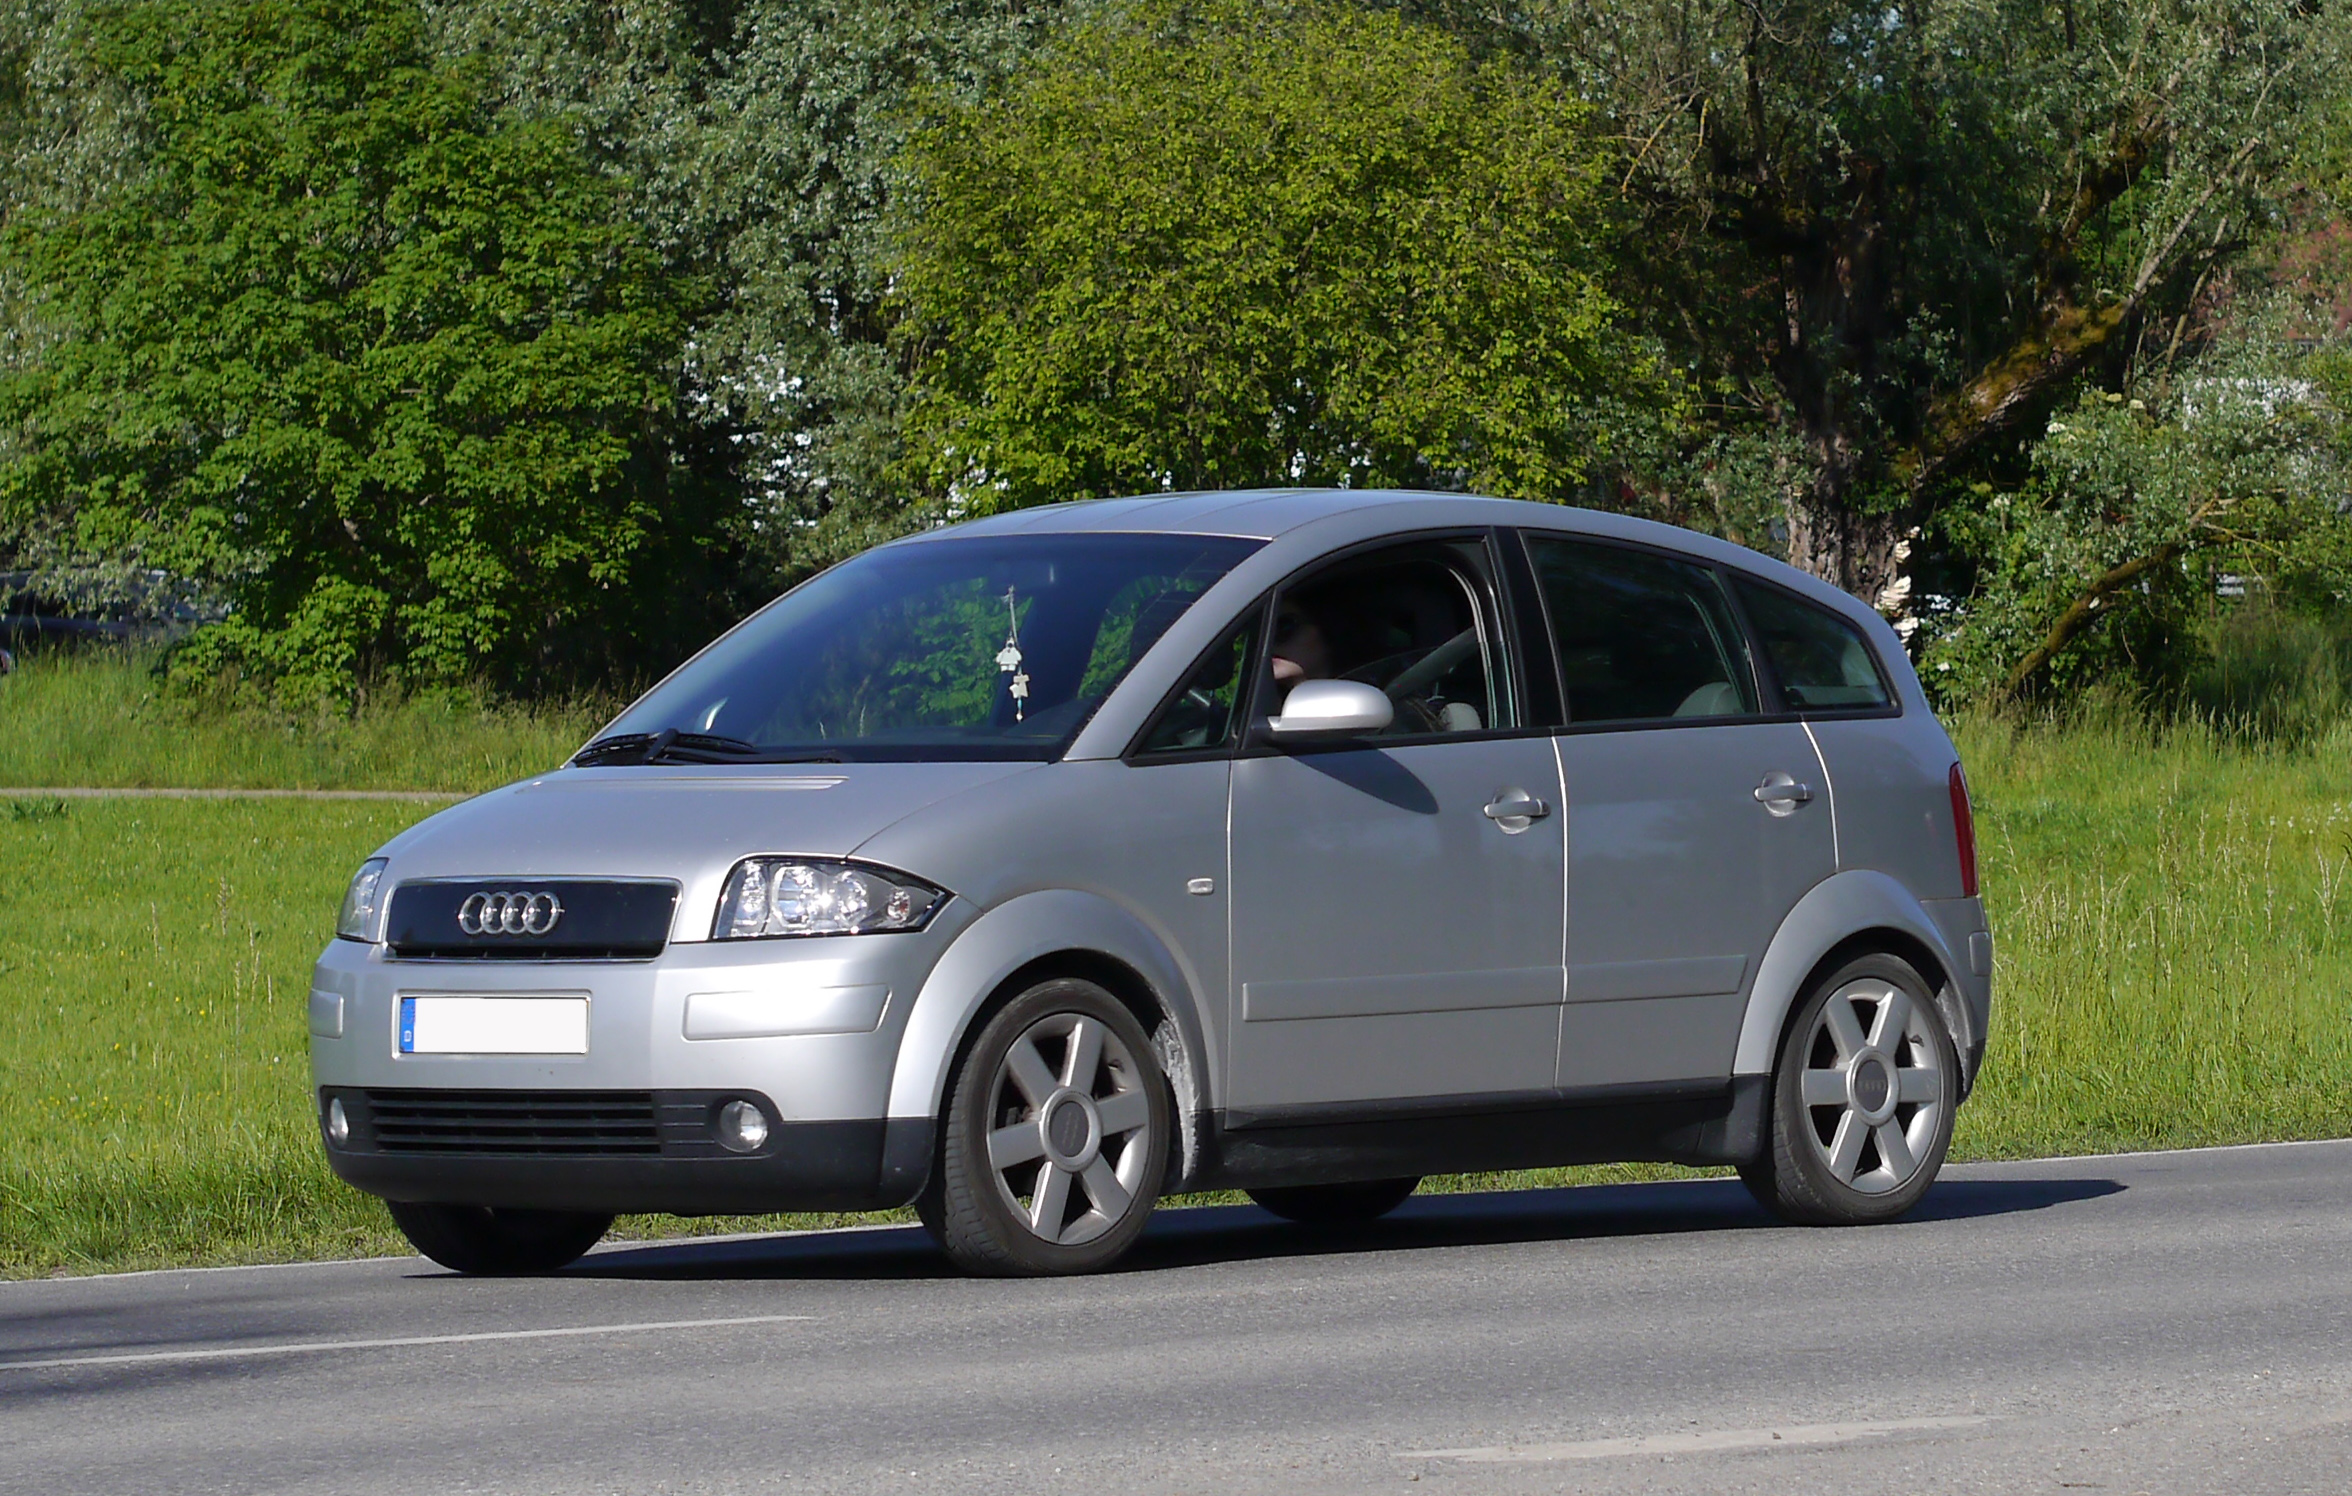 2000 Audi A2 (8z) - pictures, information and specs - Auto ...